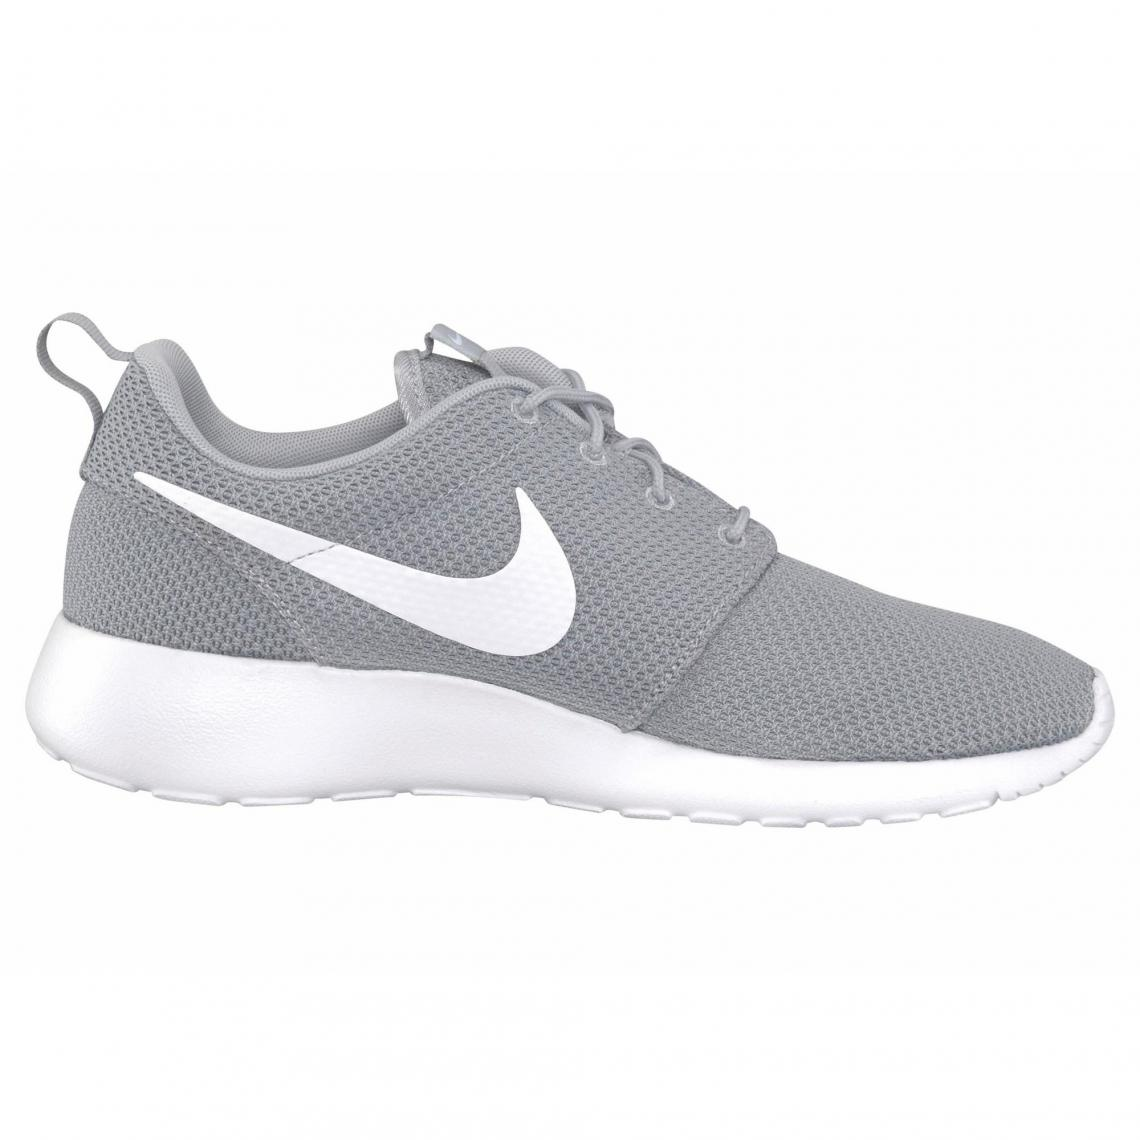 hot sale online daf22 fdc18 Nike Roshe One chaussures de running homme - Gris Nike Homme